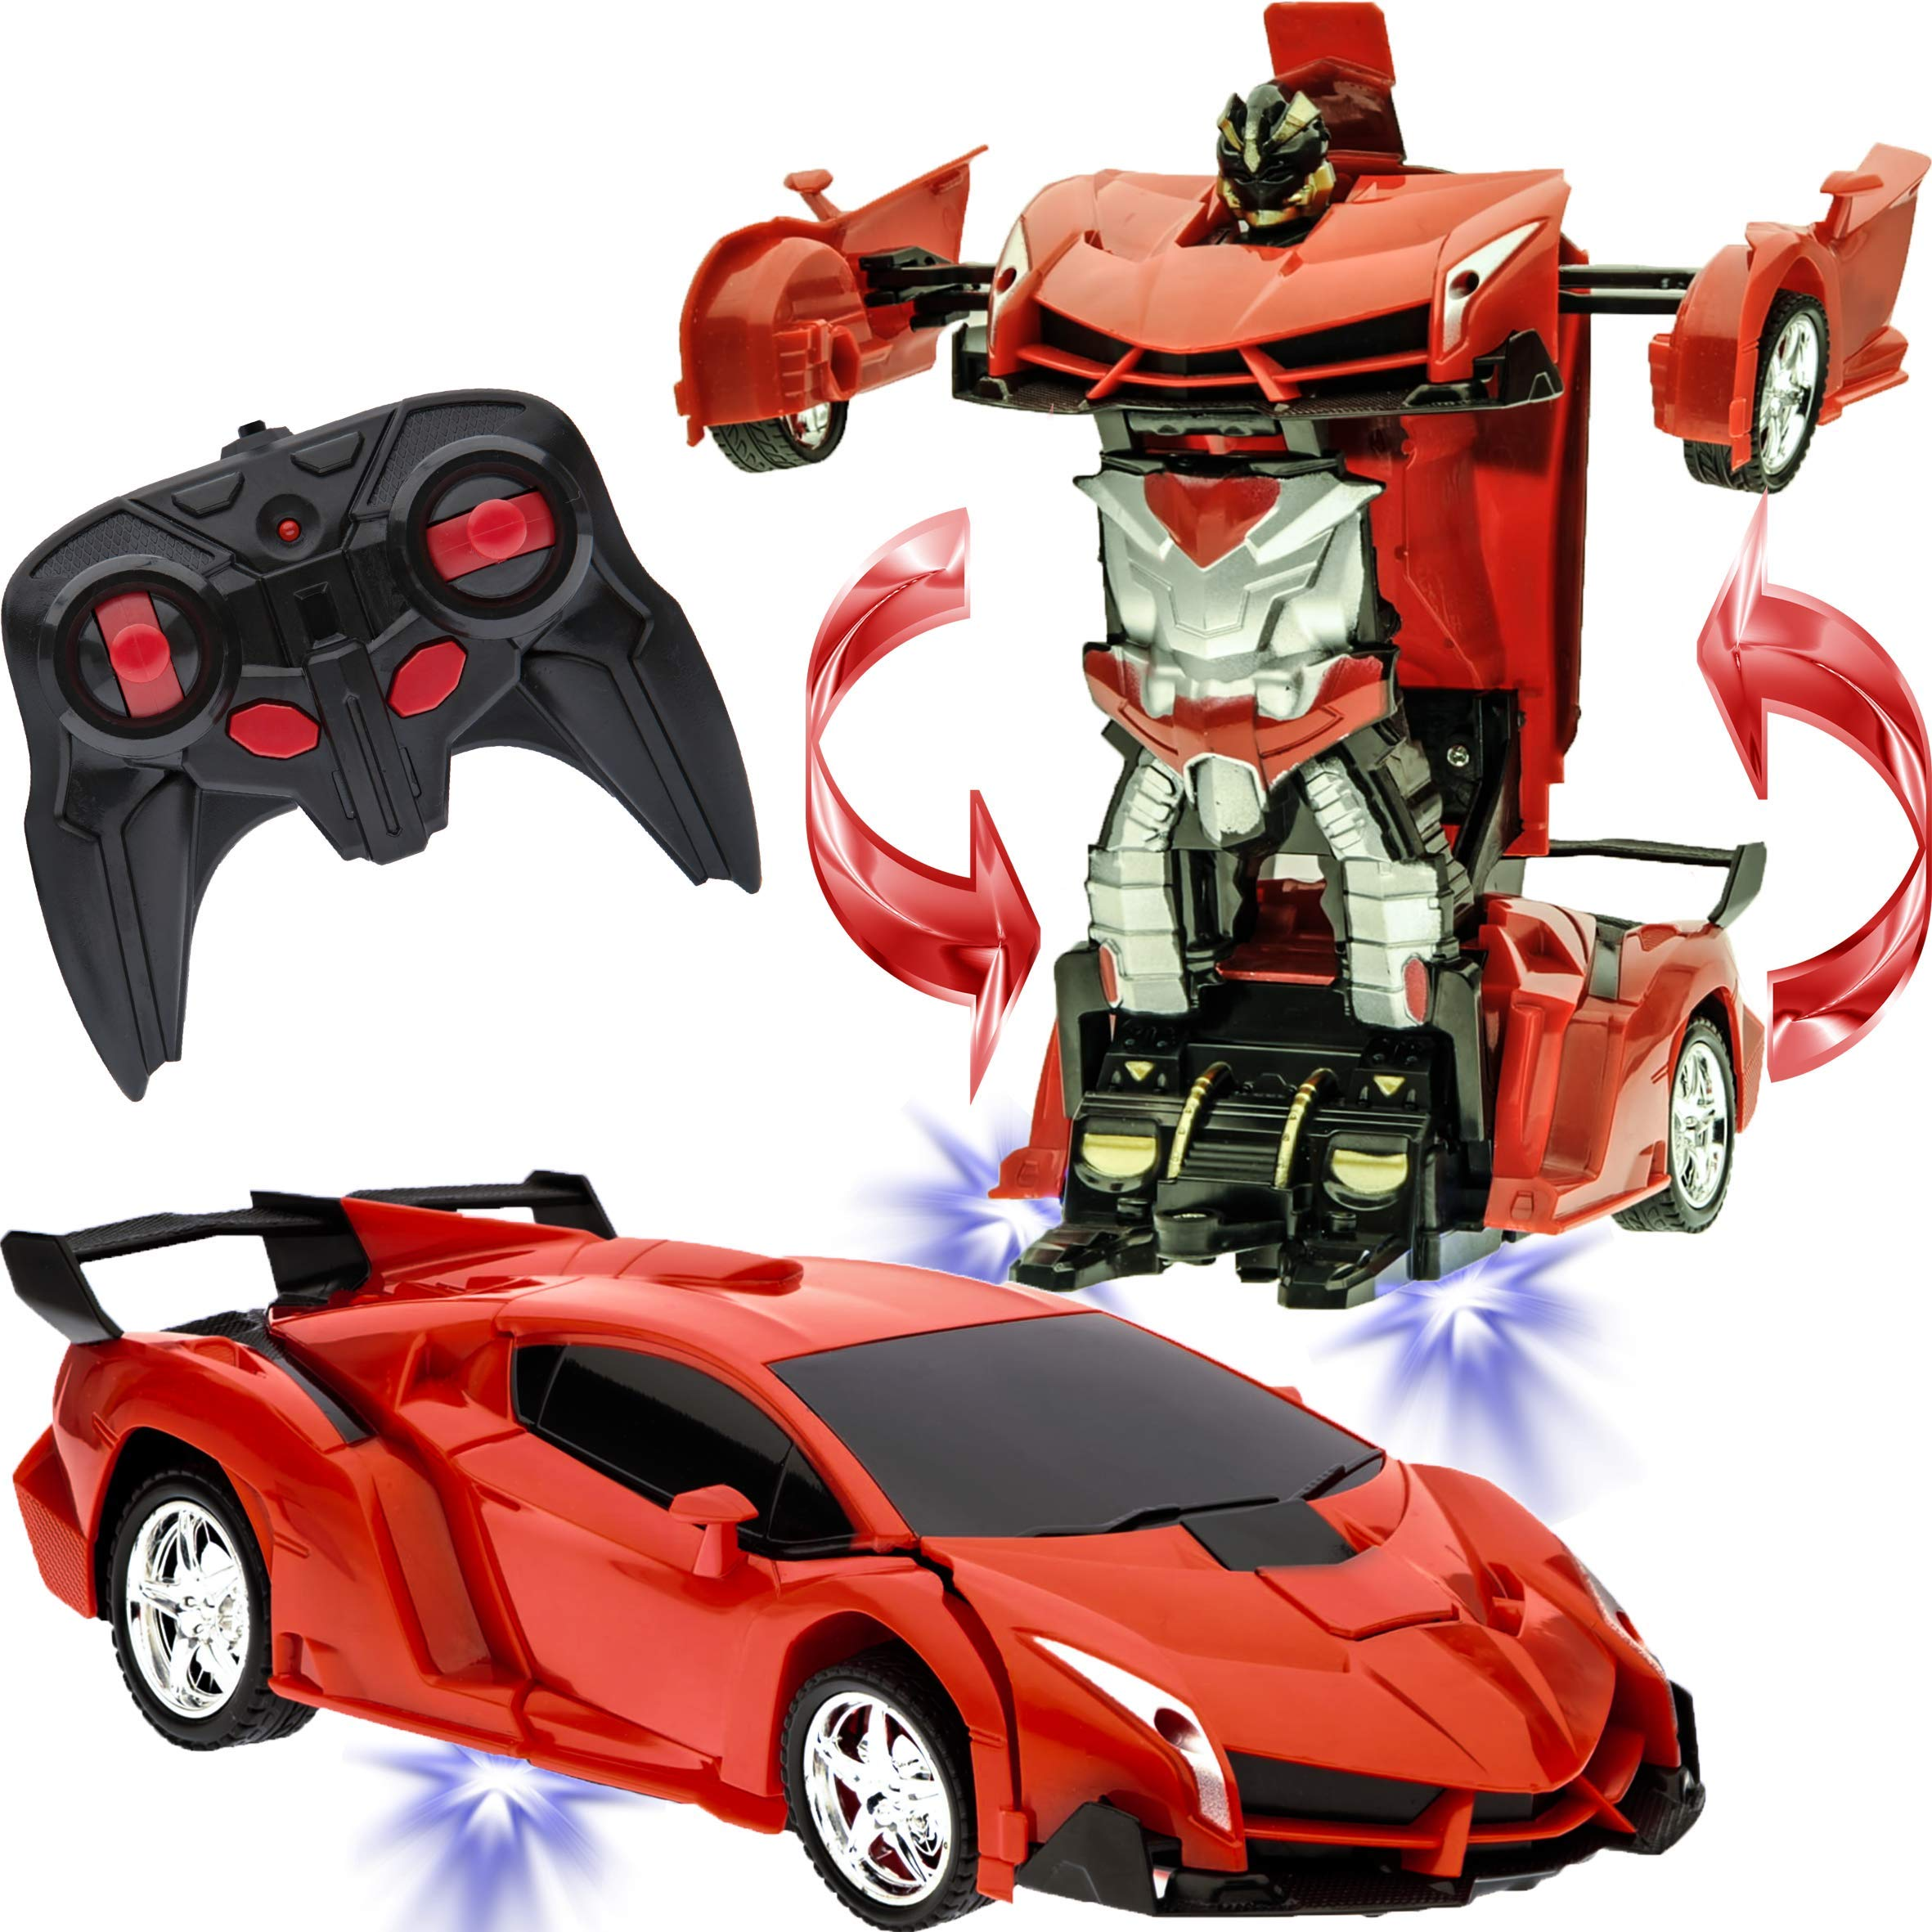 Transformer Car to Robot Toy for Kids Remote Controller Transformation Model One button Deformation to Robot for Boys Children, RC Transform 360° Rotating with LED Speed Drifting 1:18 Scale (Red)